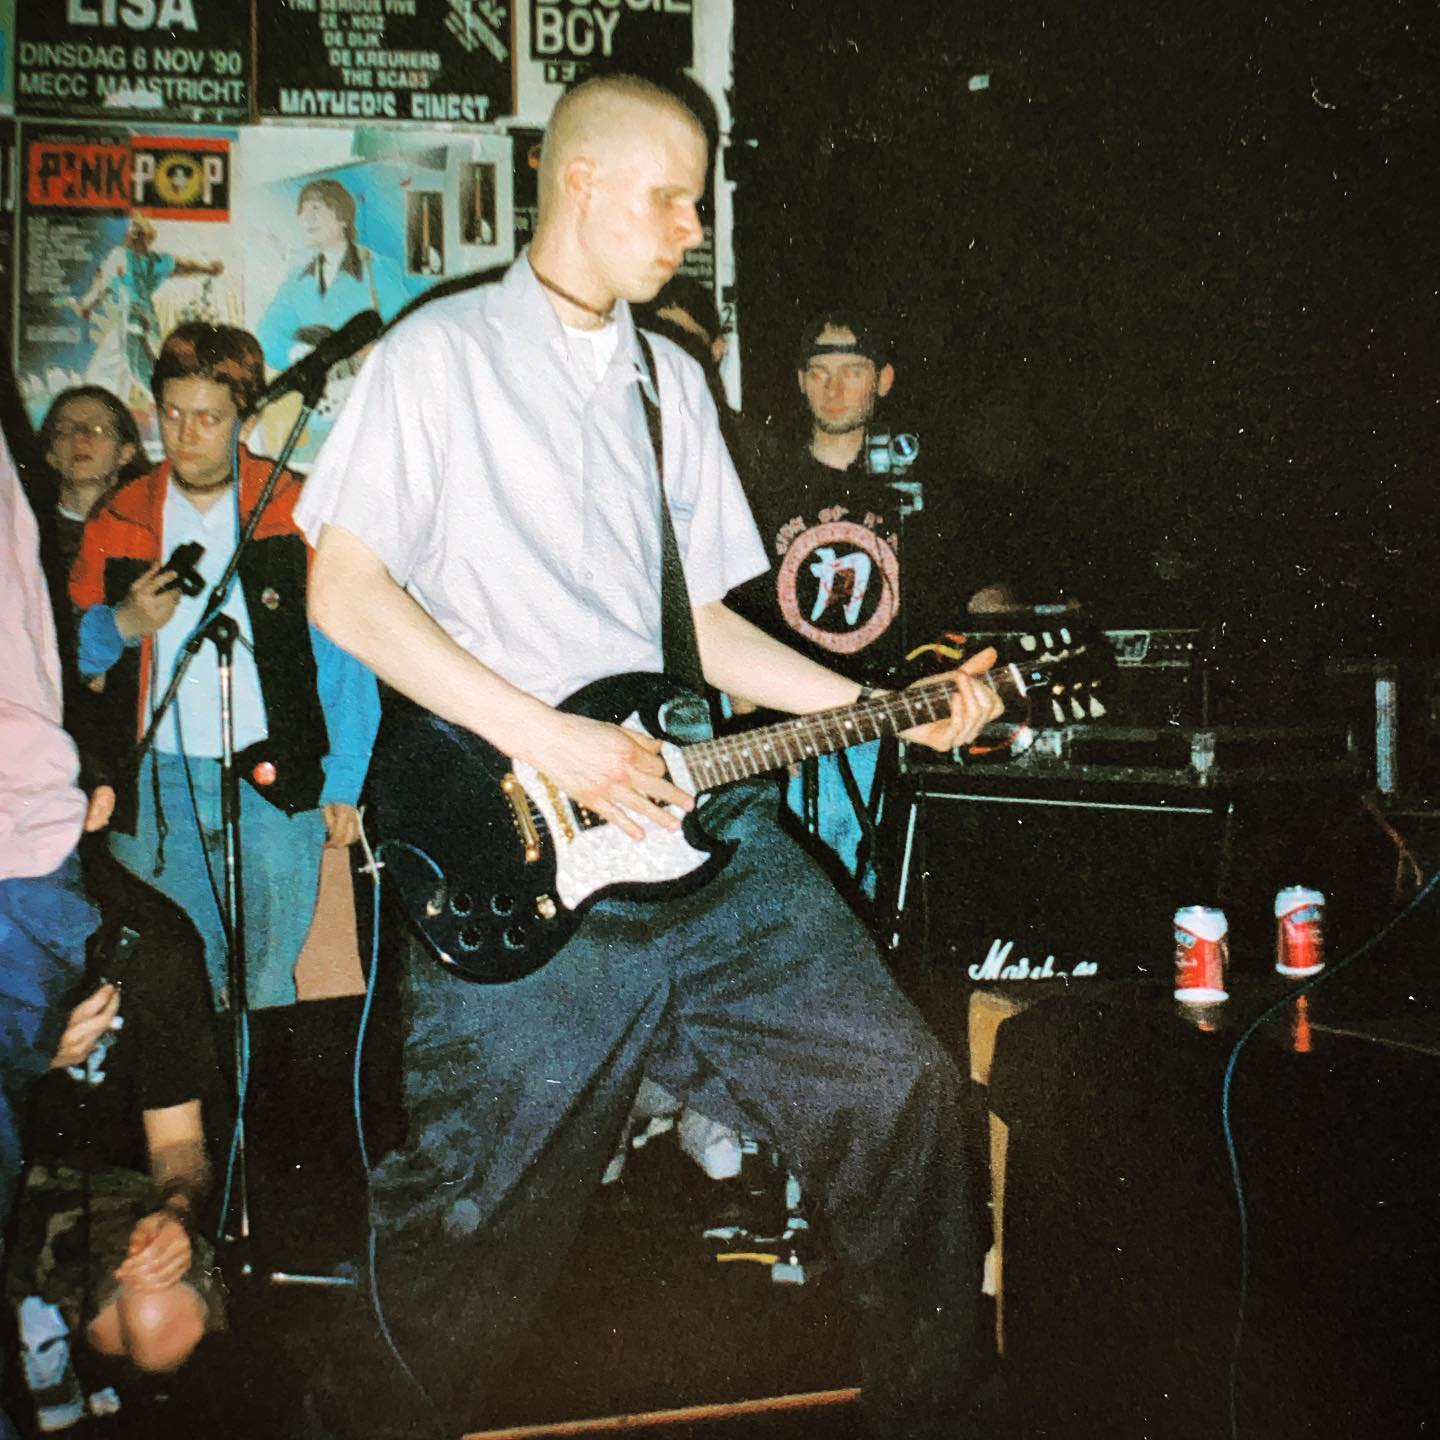 Veil - Hardcore fest Geleen - 8/9 March 1997 #straightedge #hardcore #punkrock #harekrishna @xthreesomex @lookingback_ography pic by @twentylandcrew